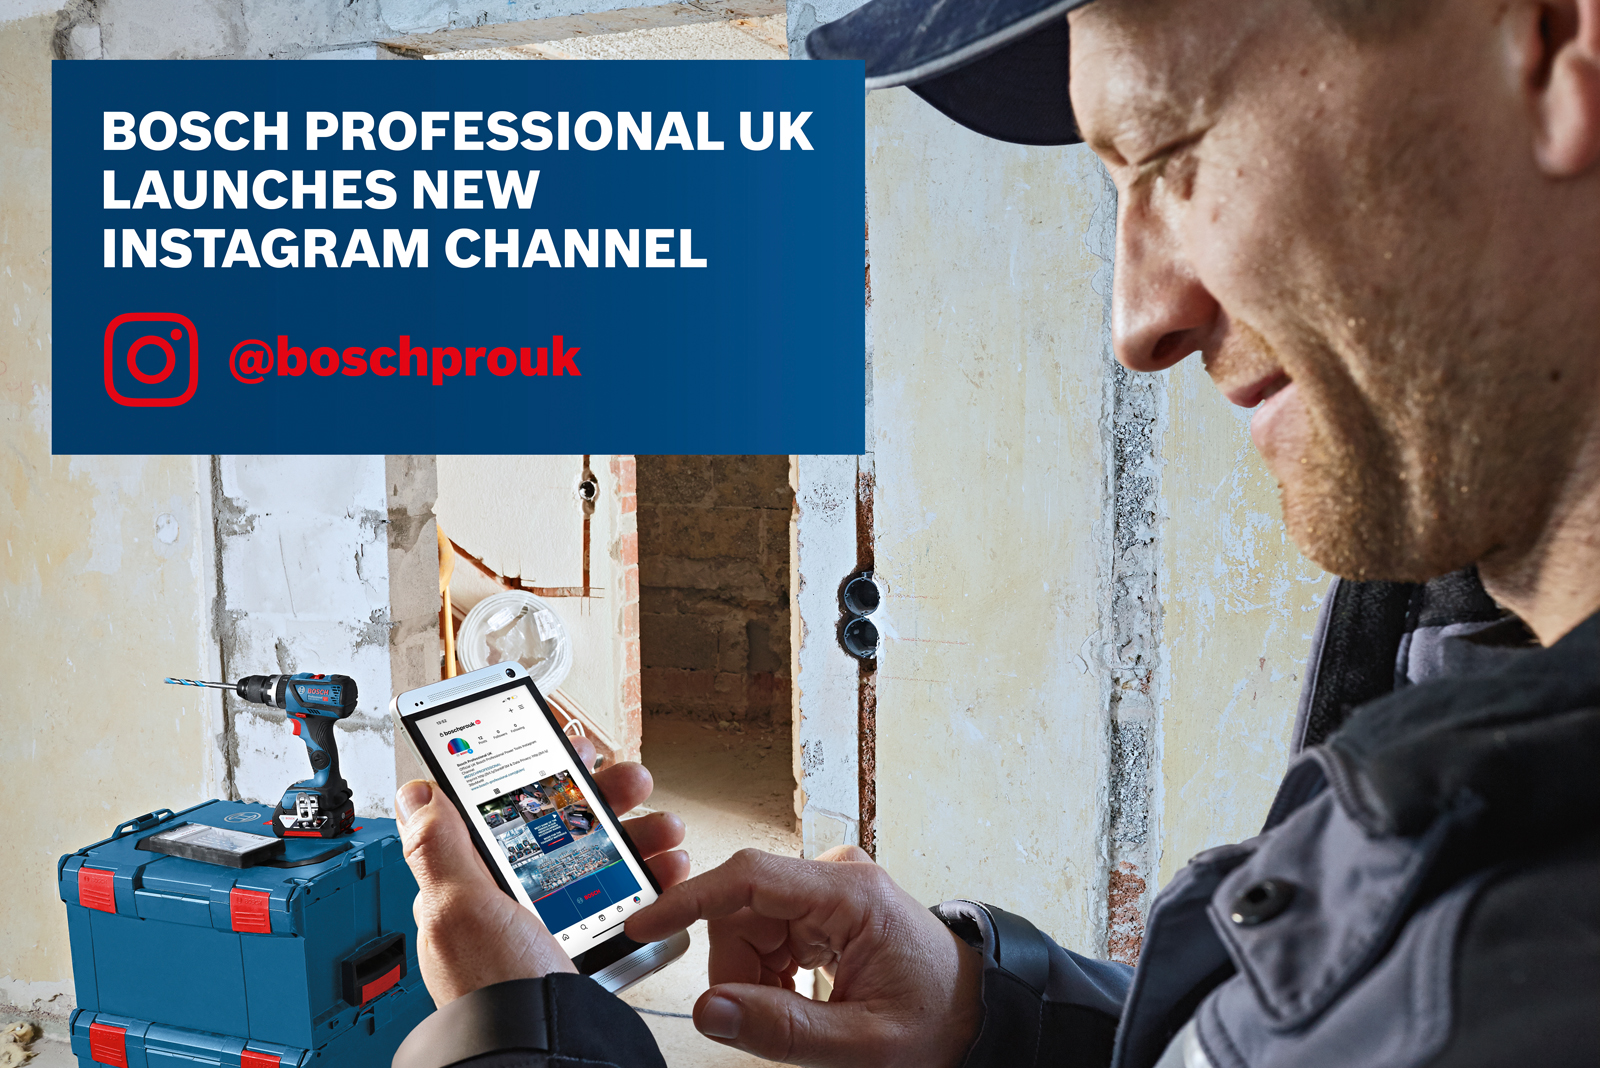 Bosch Professional UK launches new Instagram channel